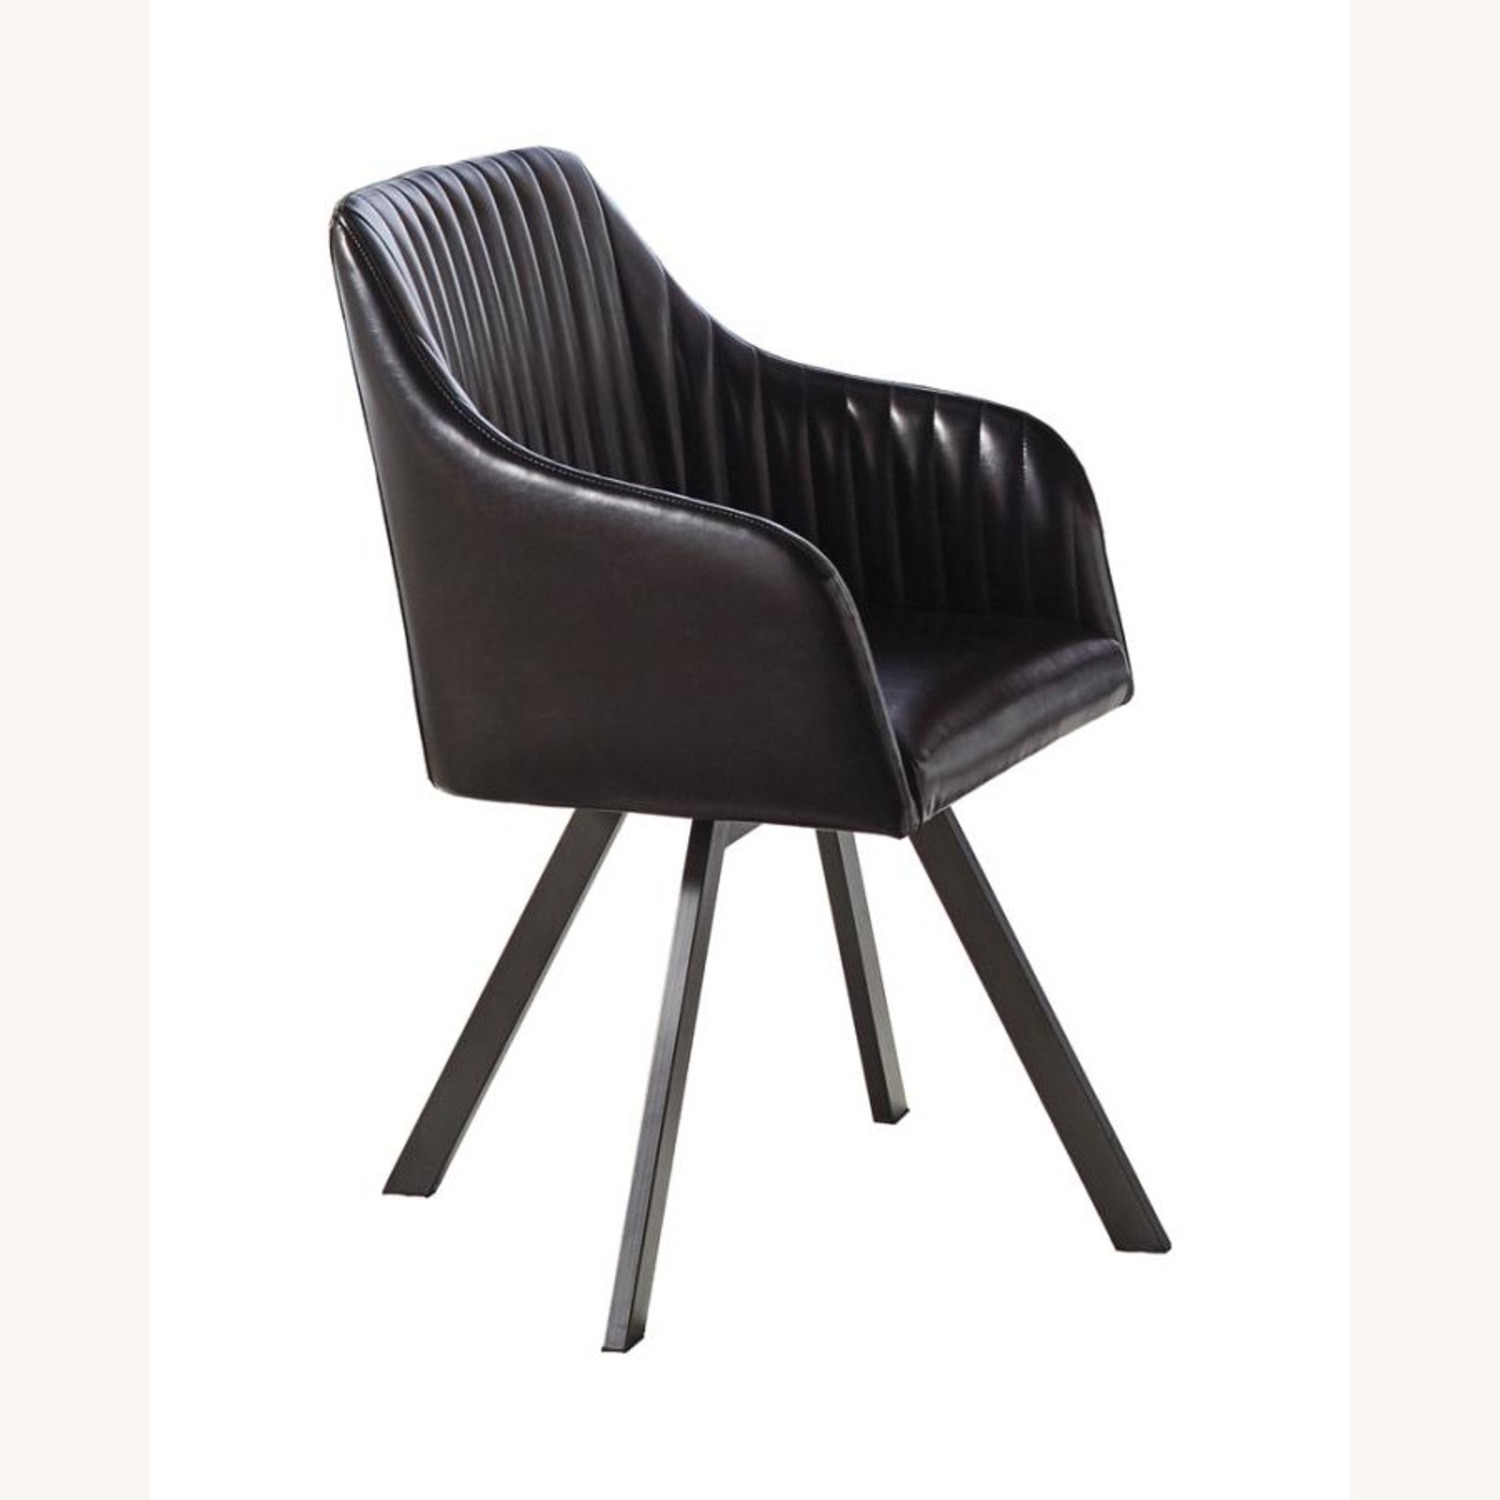 Swivel Dining Chair In Black Leatherette Finish - image-0